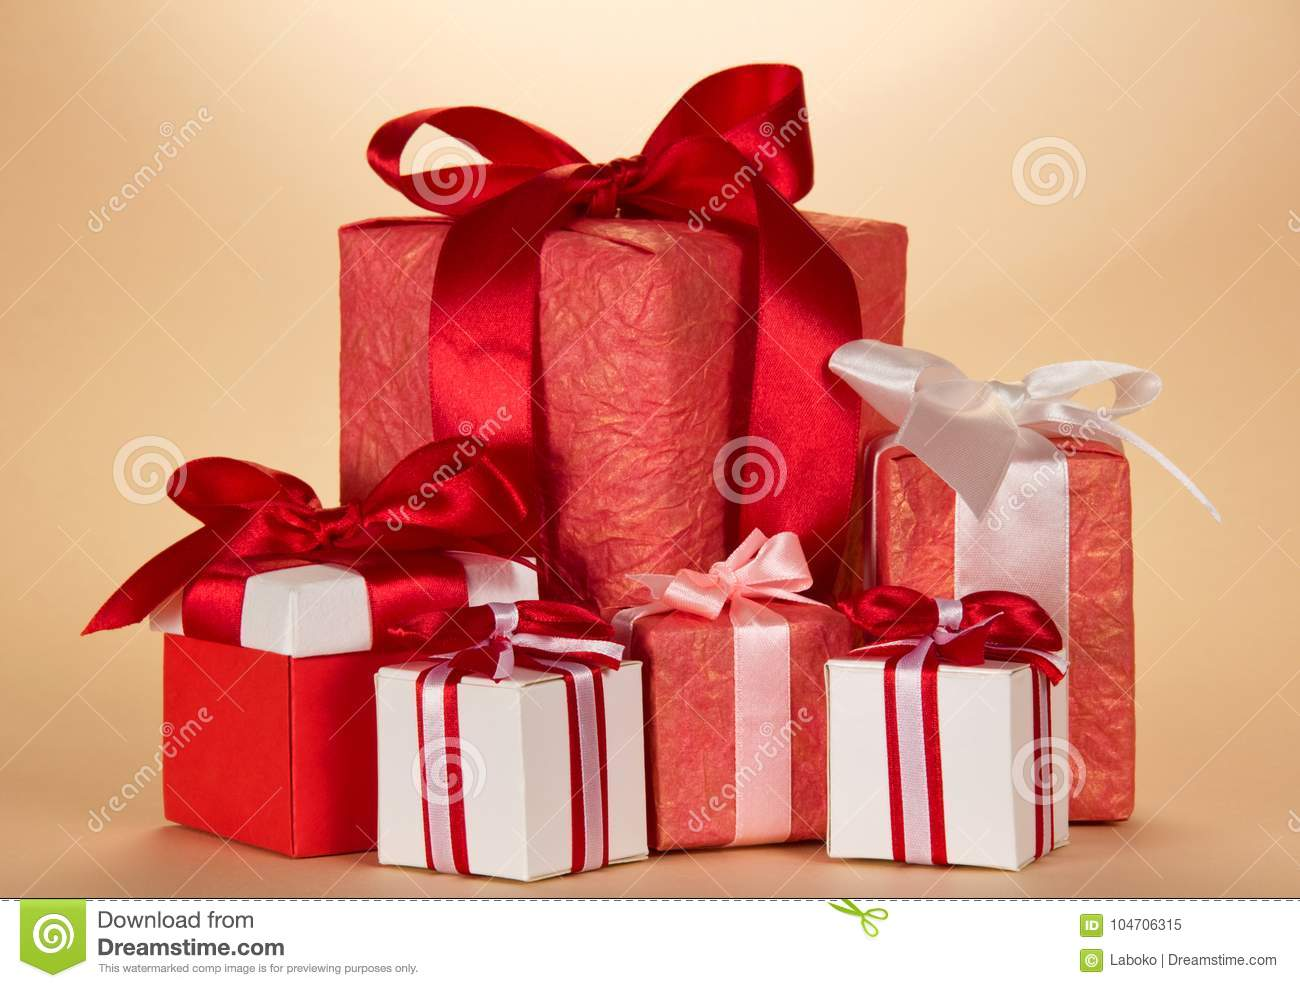 Many Large And Small Christmas Gifts On Beige Stock Image - Image of ...